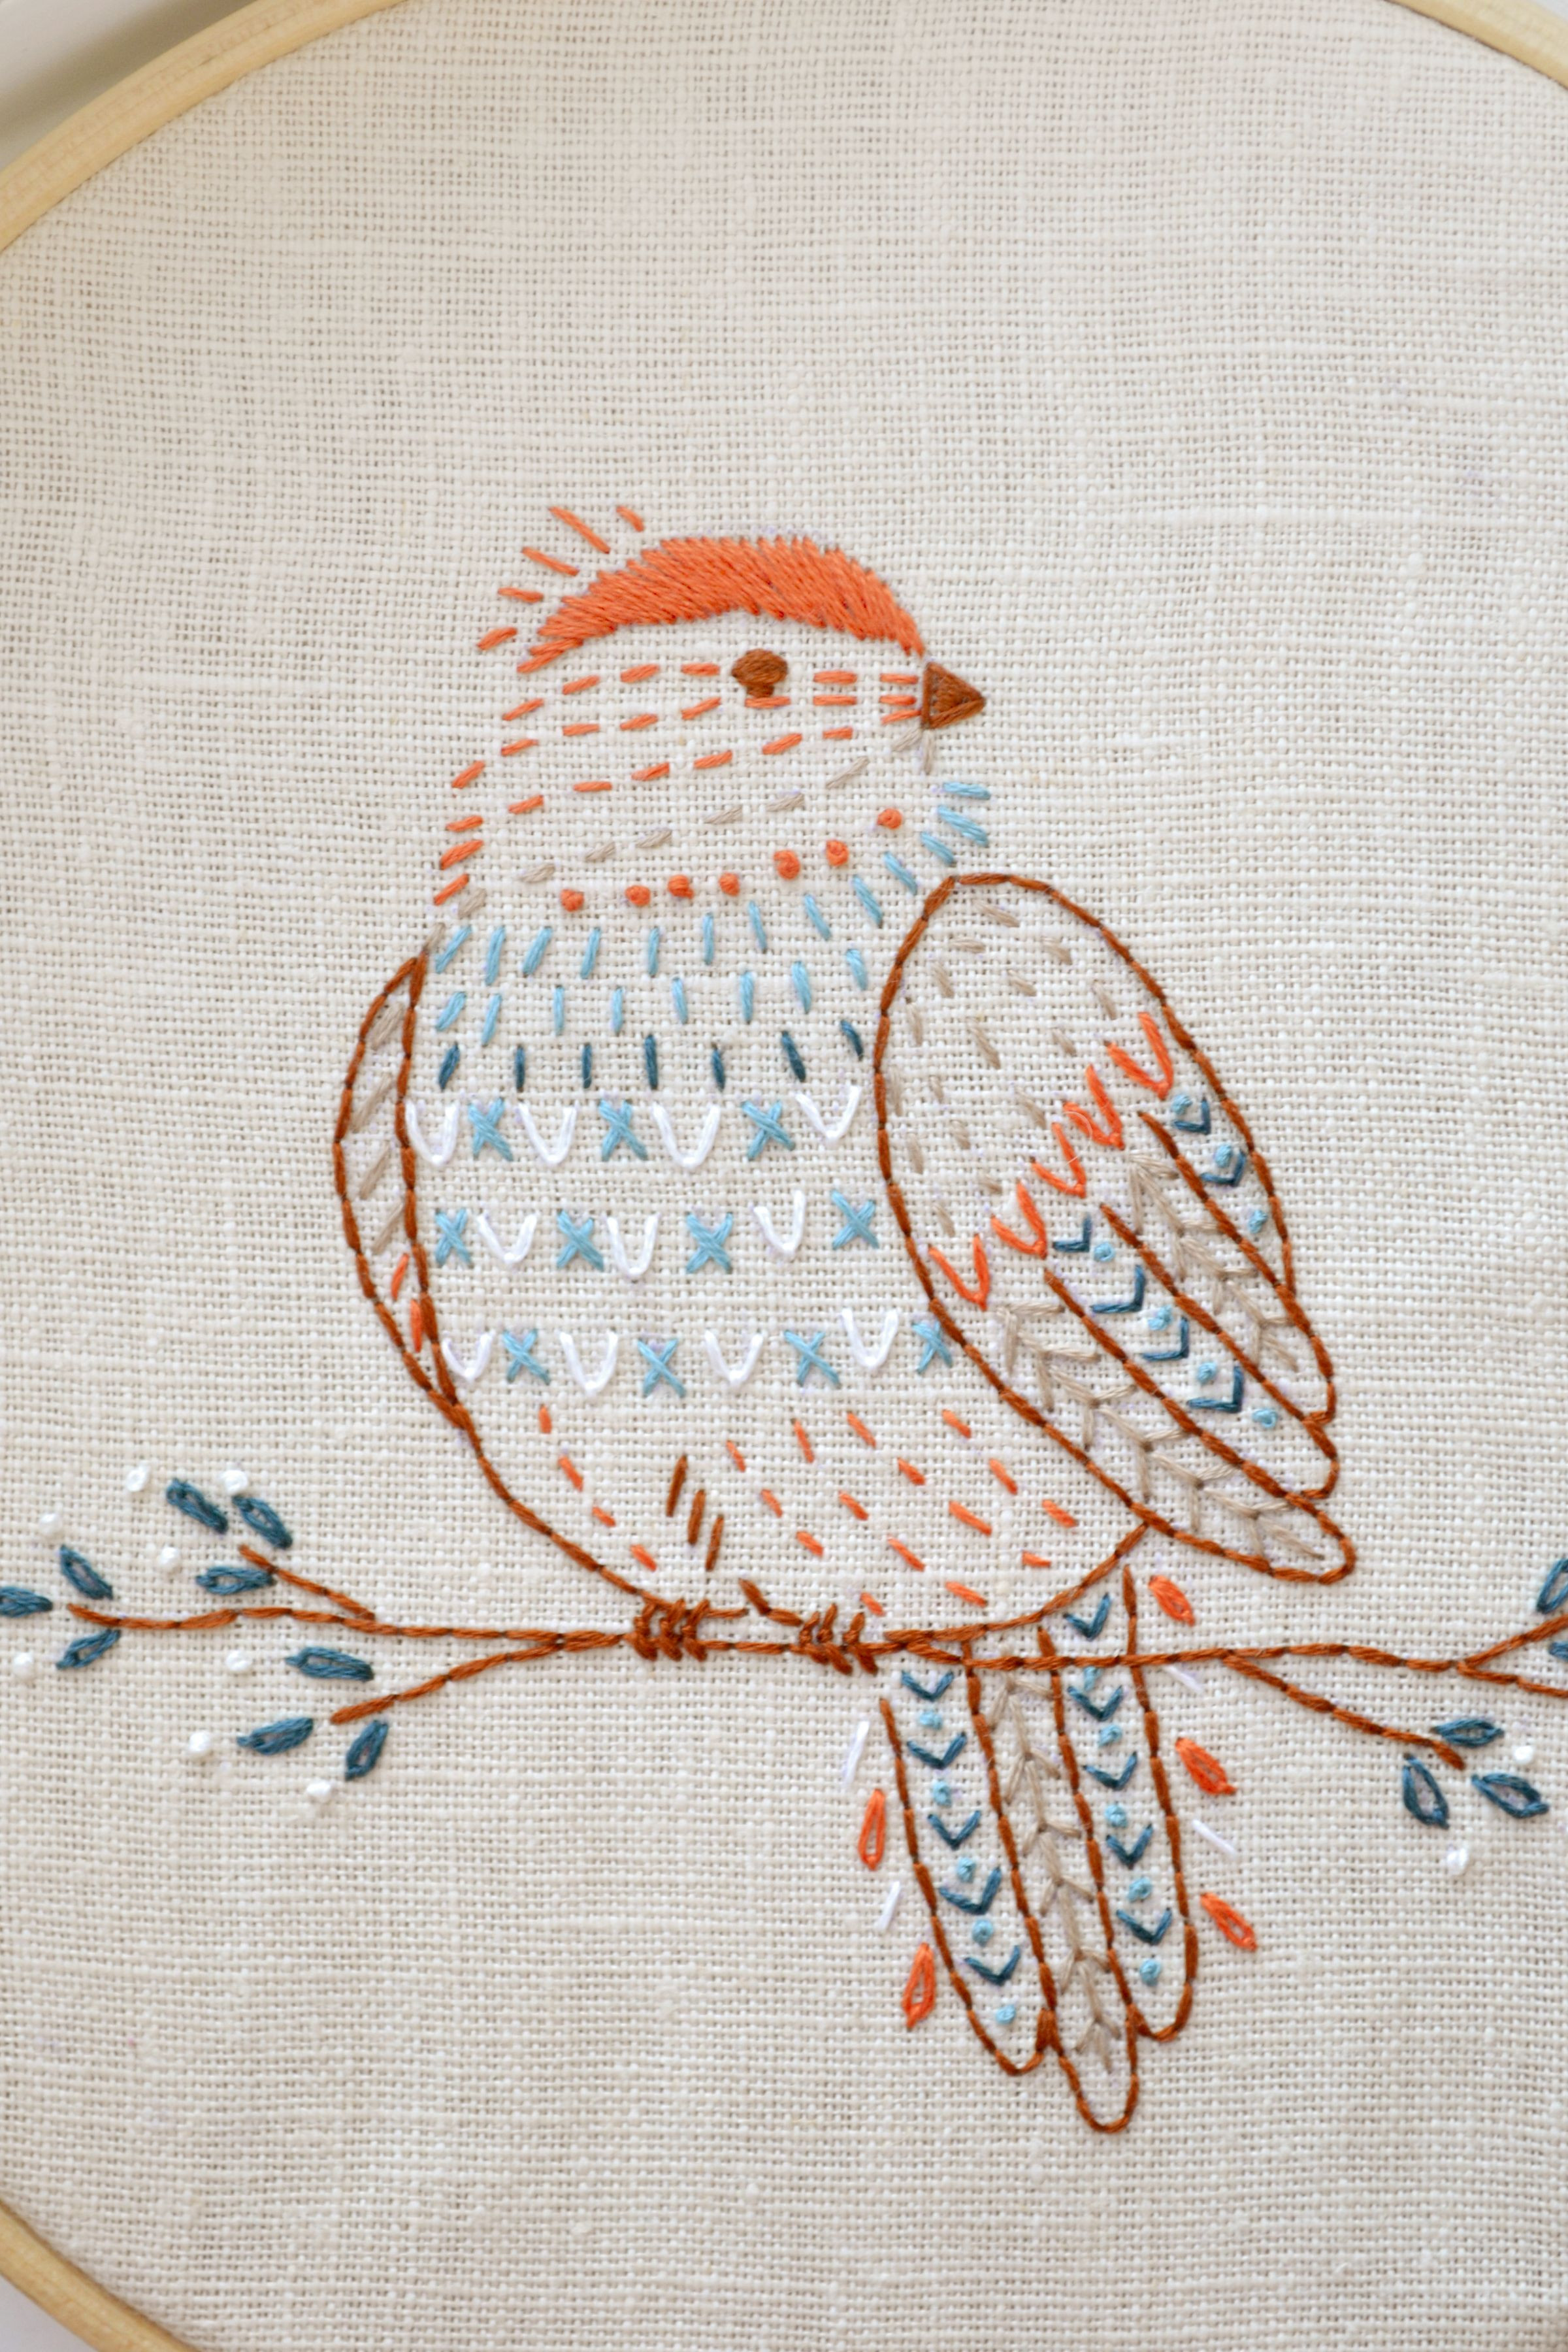 Hand Embroidery Patterns Luxury Bird Hand Embroidery Pattern Pdf 6 Pages Naiveneedle Of Adorable 44 Pictures Hand Embroidery Patterns